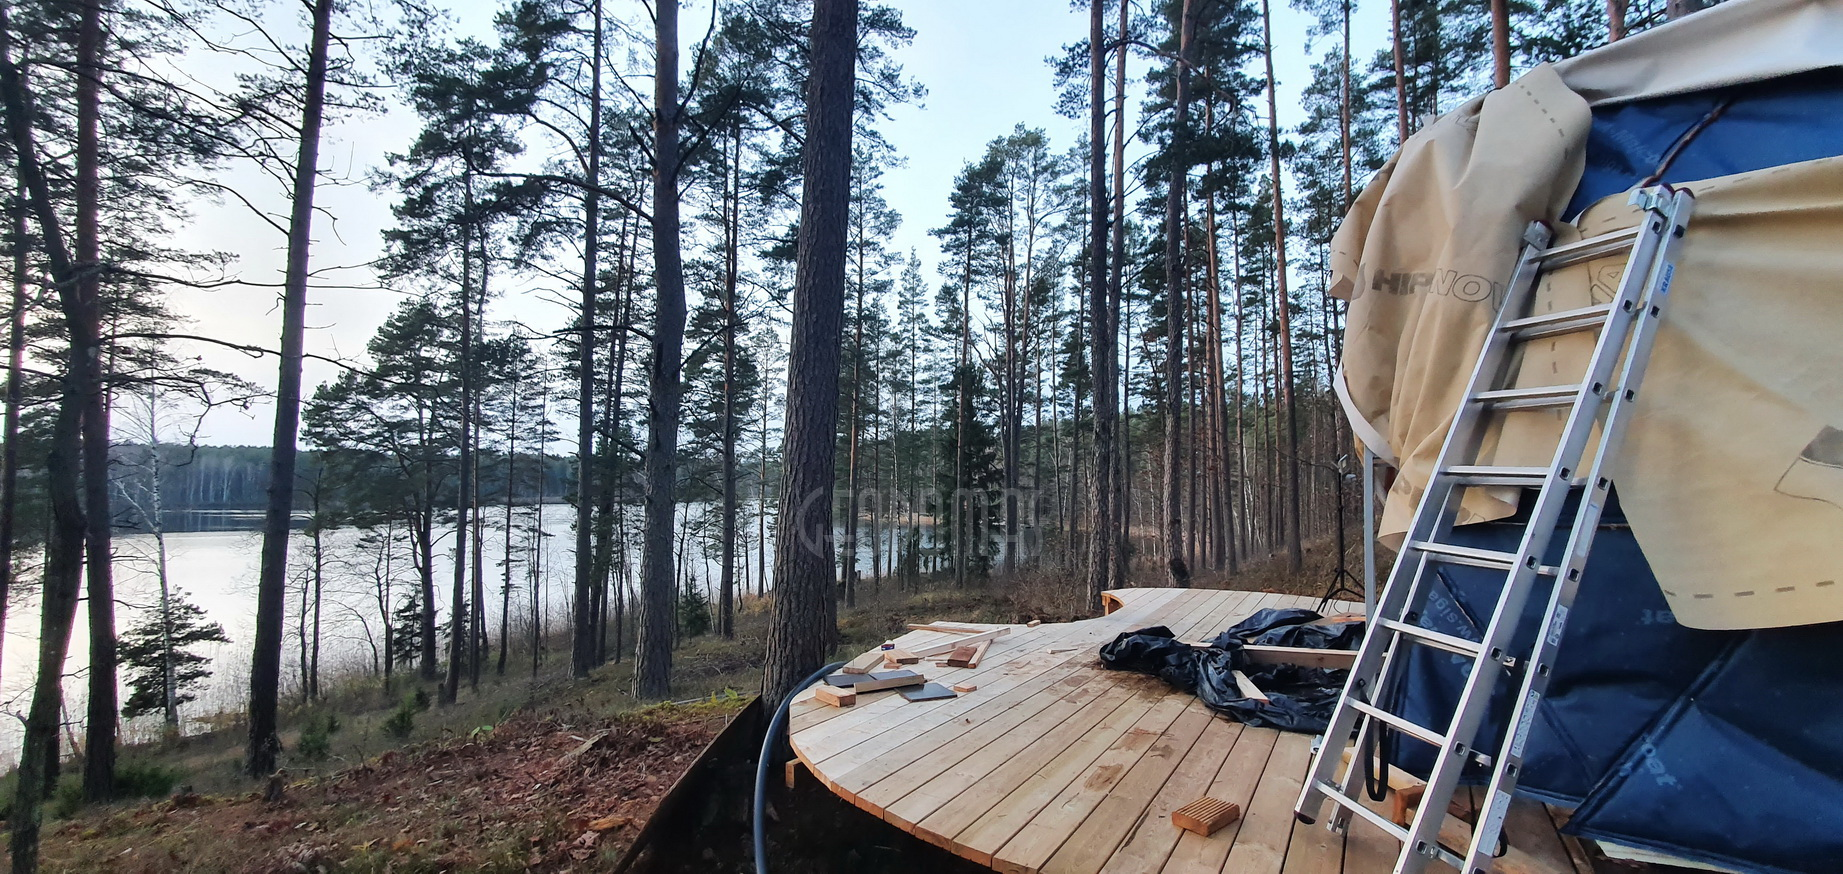 Connect with nature | Eco Living in forest | GLAMPINGLITHUANIA